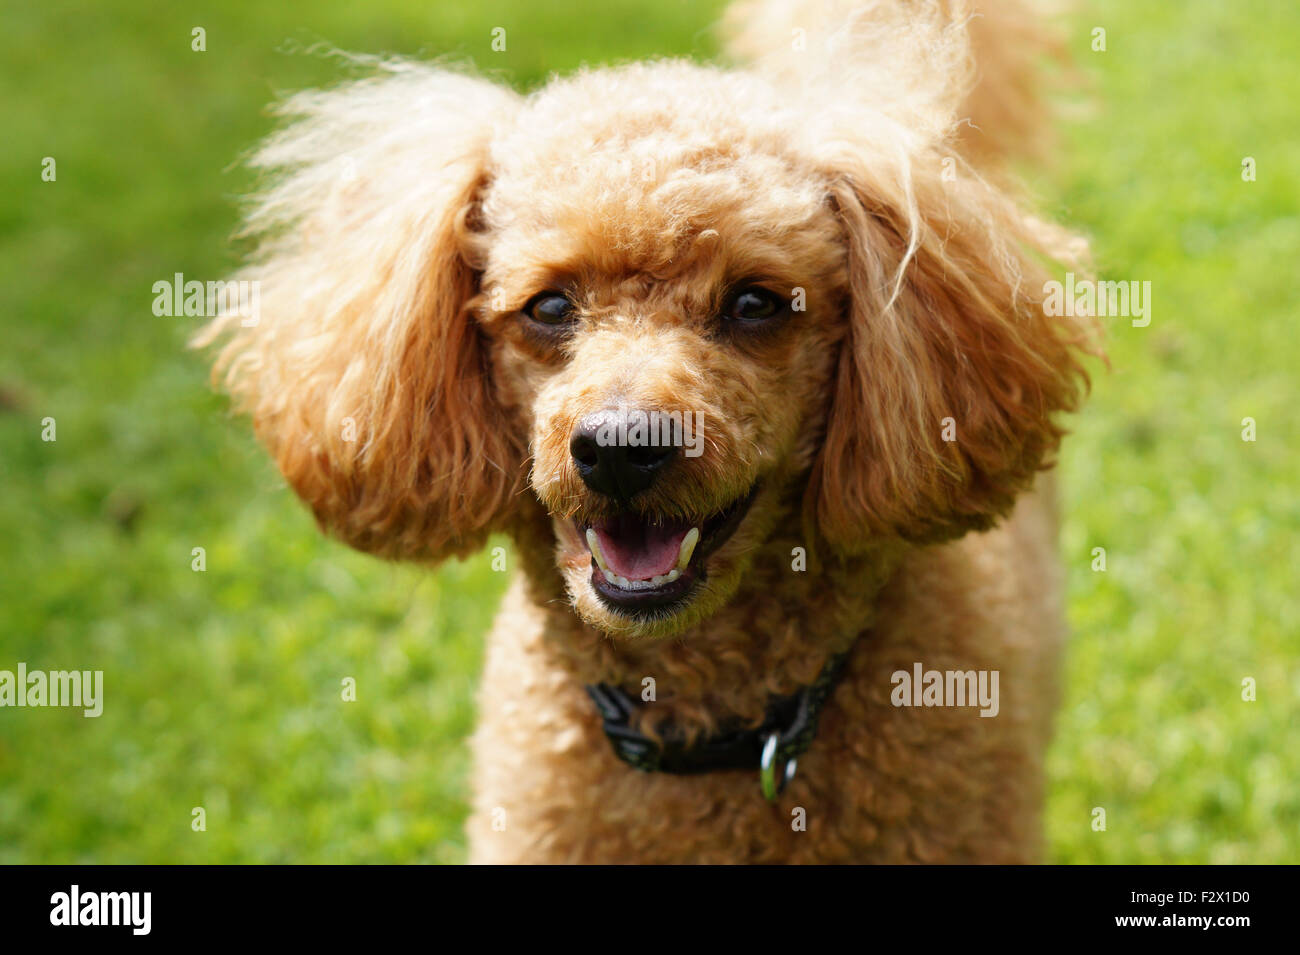 Happy Smiling Fluffy Red Toy Poodle with Teeth Showing in face close up photo - Stock Image